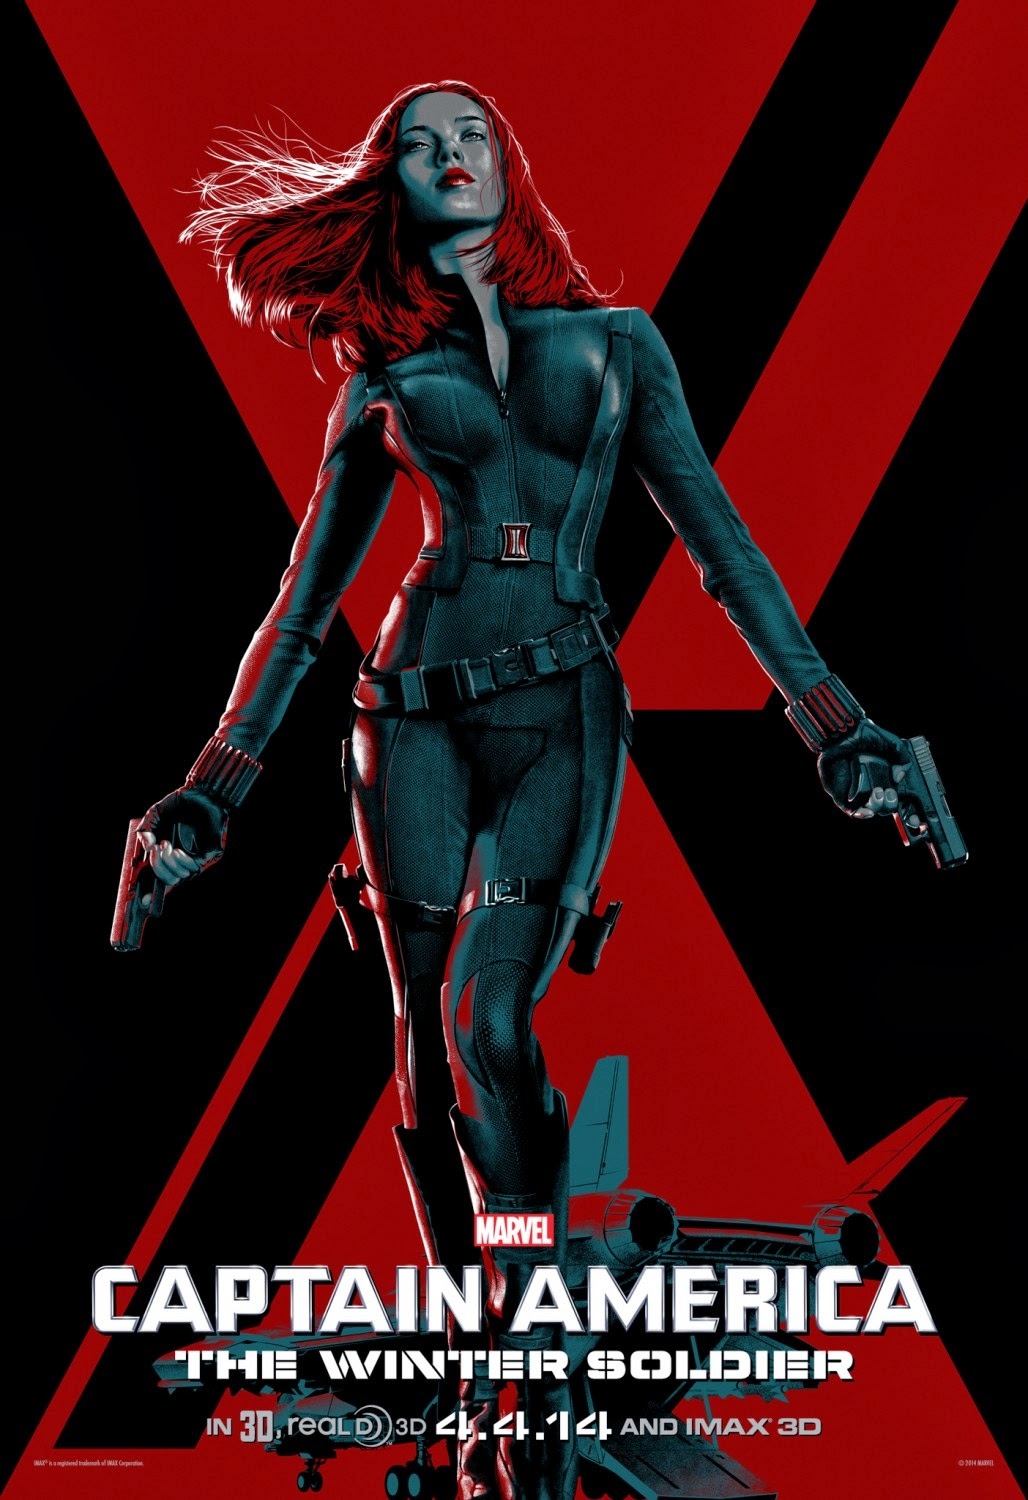 Captain America The Winter Soldier IMAX Character One Sheet Movie Poster Set - Scarlett Johansson as Black Widow